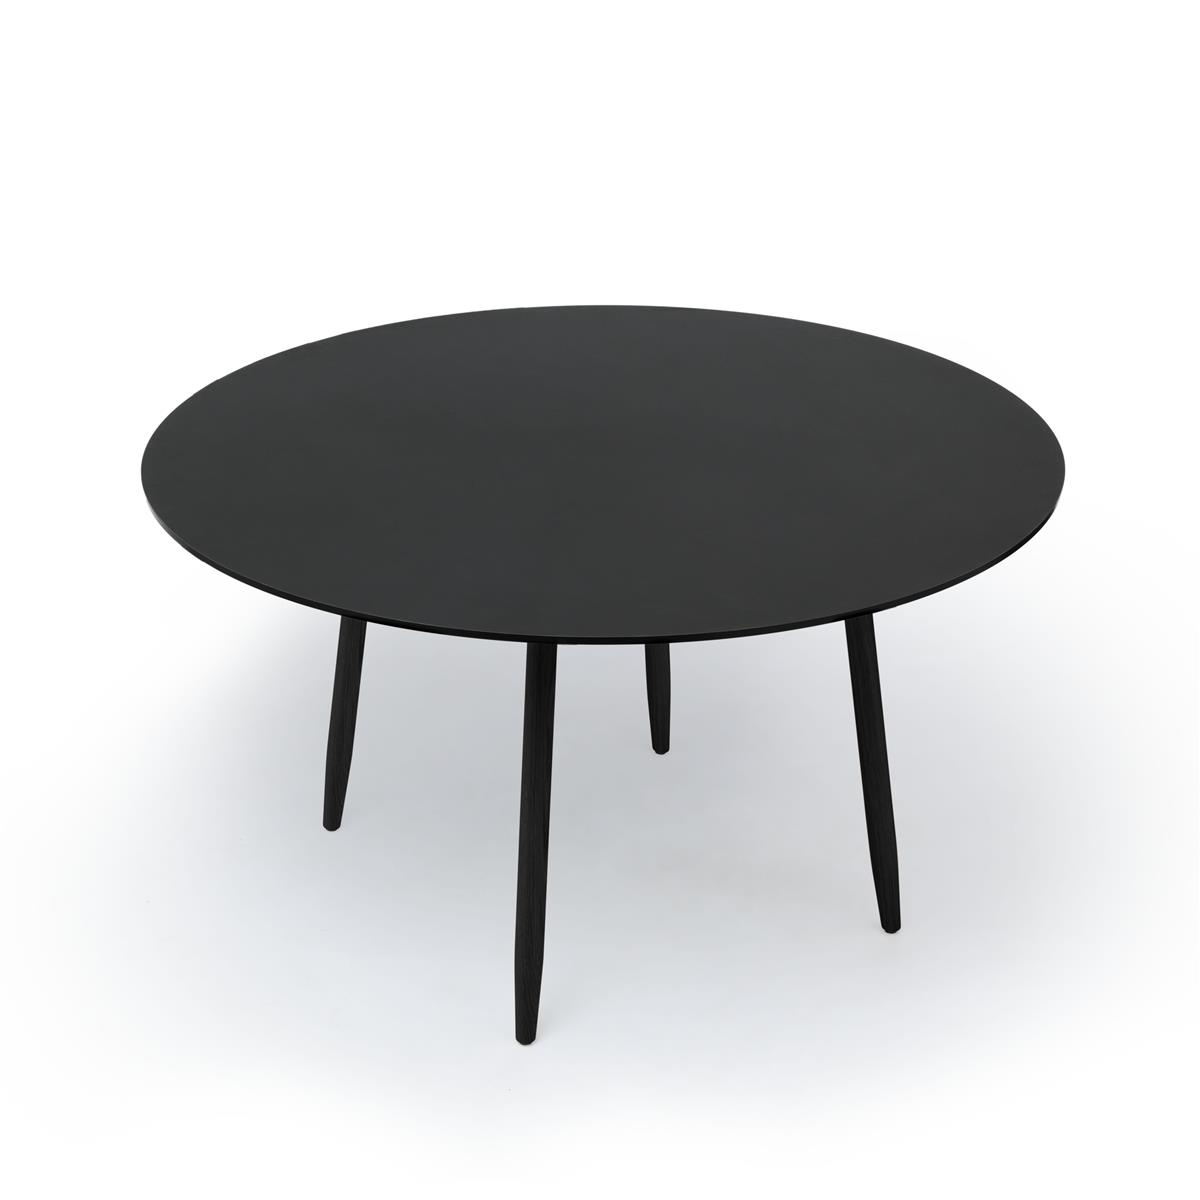 Icha Table - Charcoal & Black Stained Oak